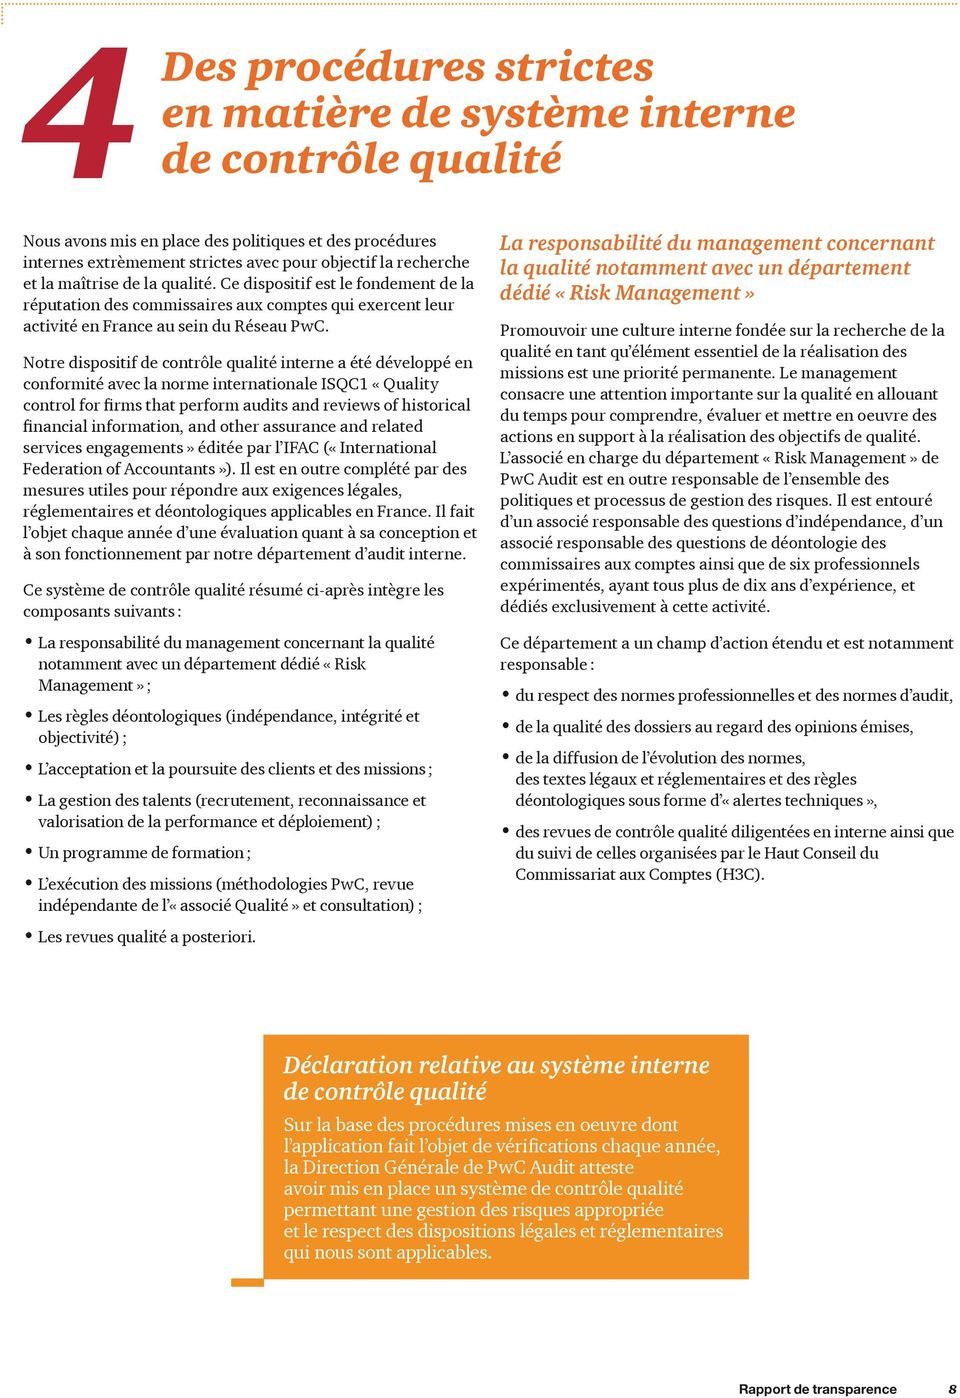 Notre dispositif de contrôle qualité interne a été développé en conformité avec la norme internationale ISQC1 «Quality control for firms that perform audits and reviews of historical financial